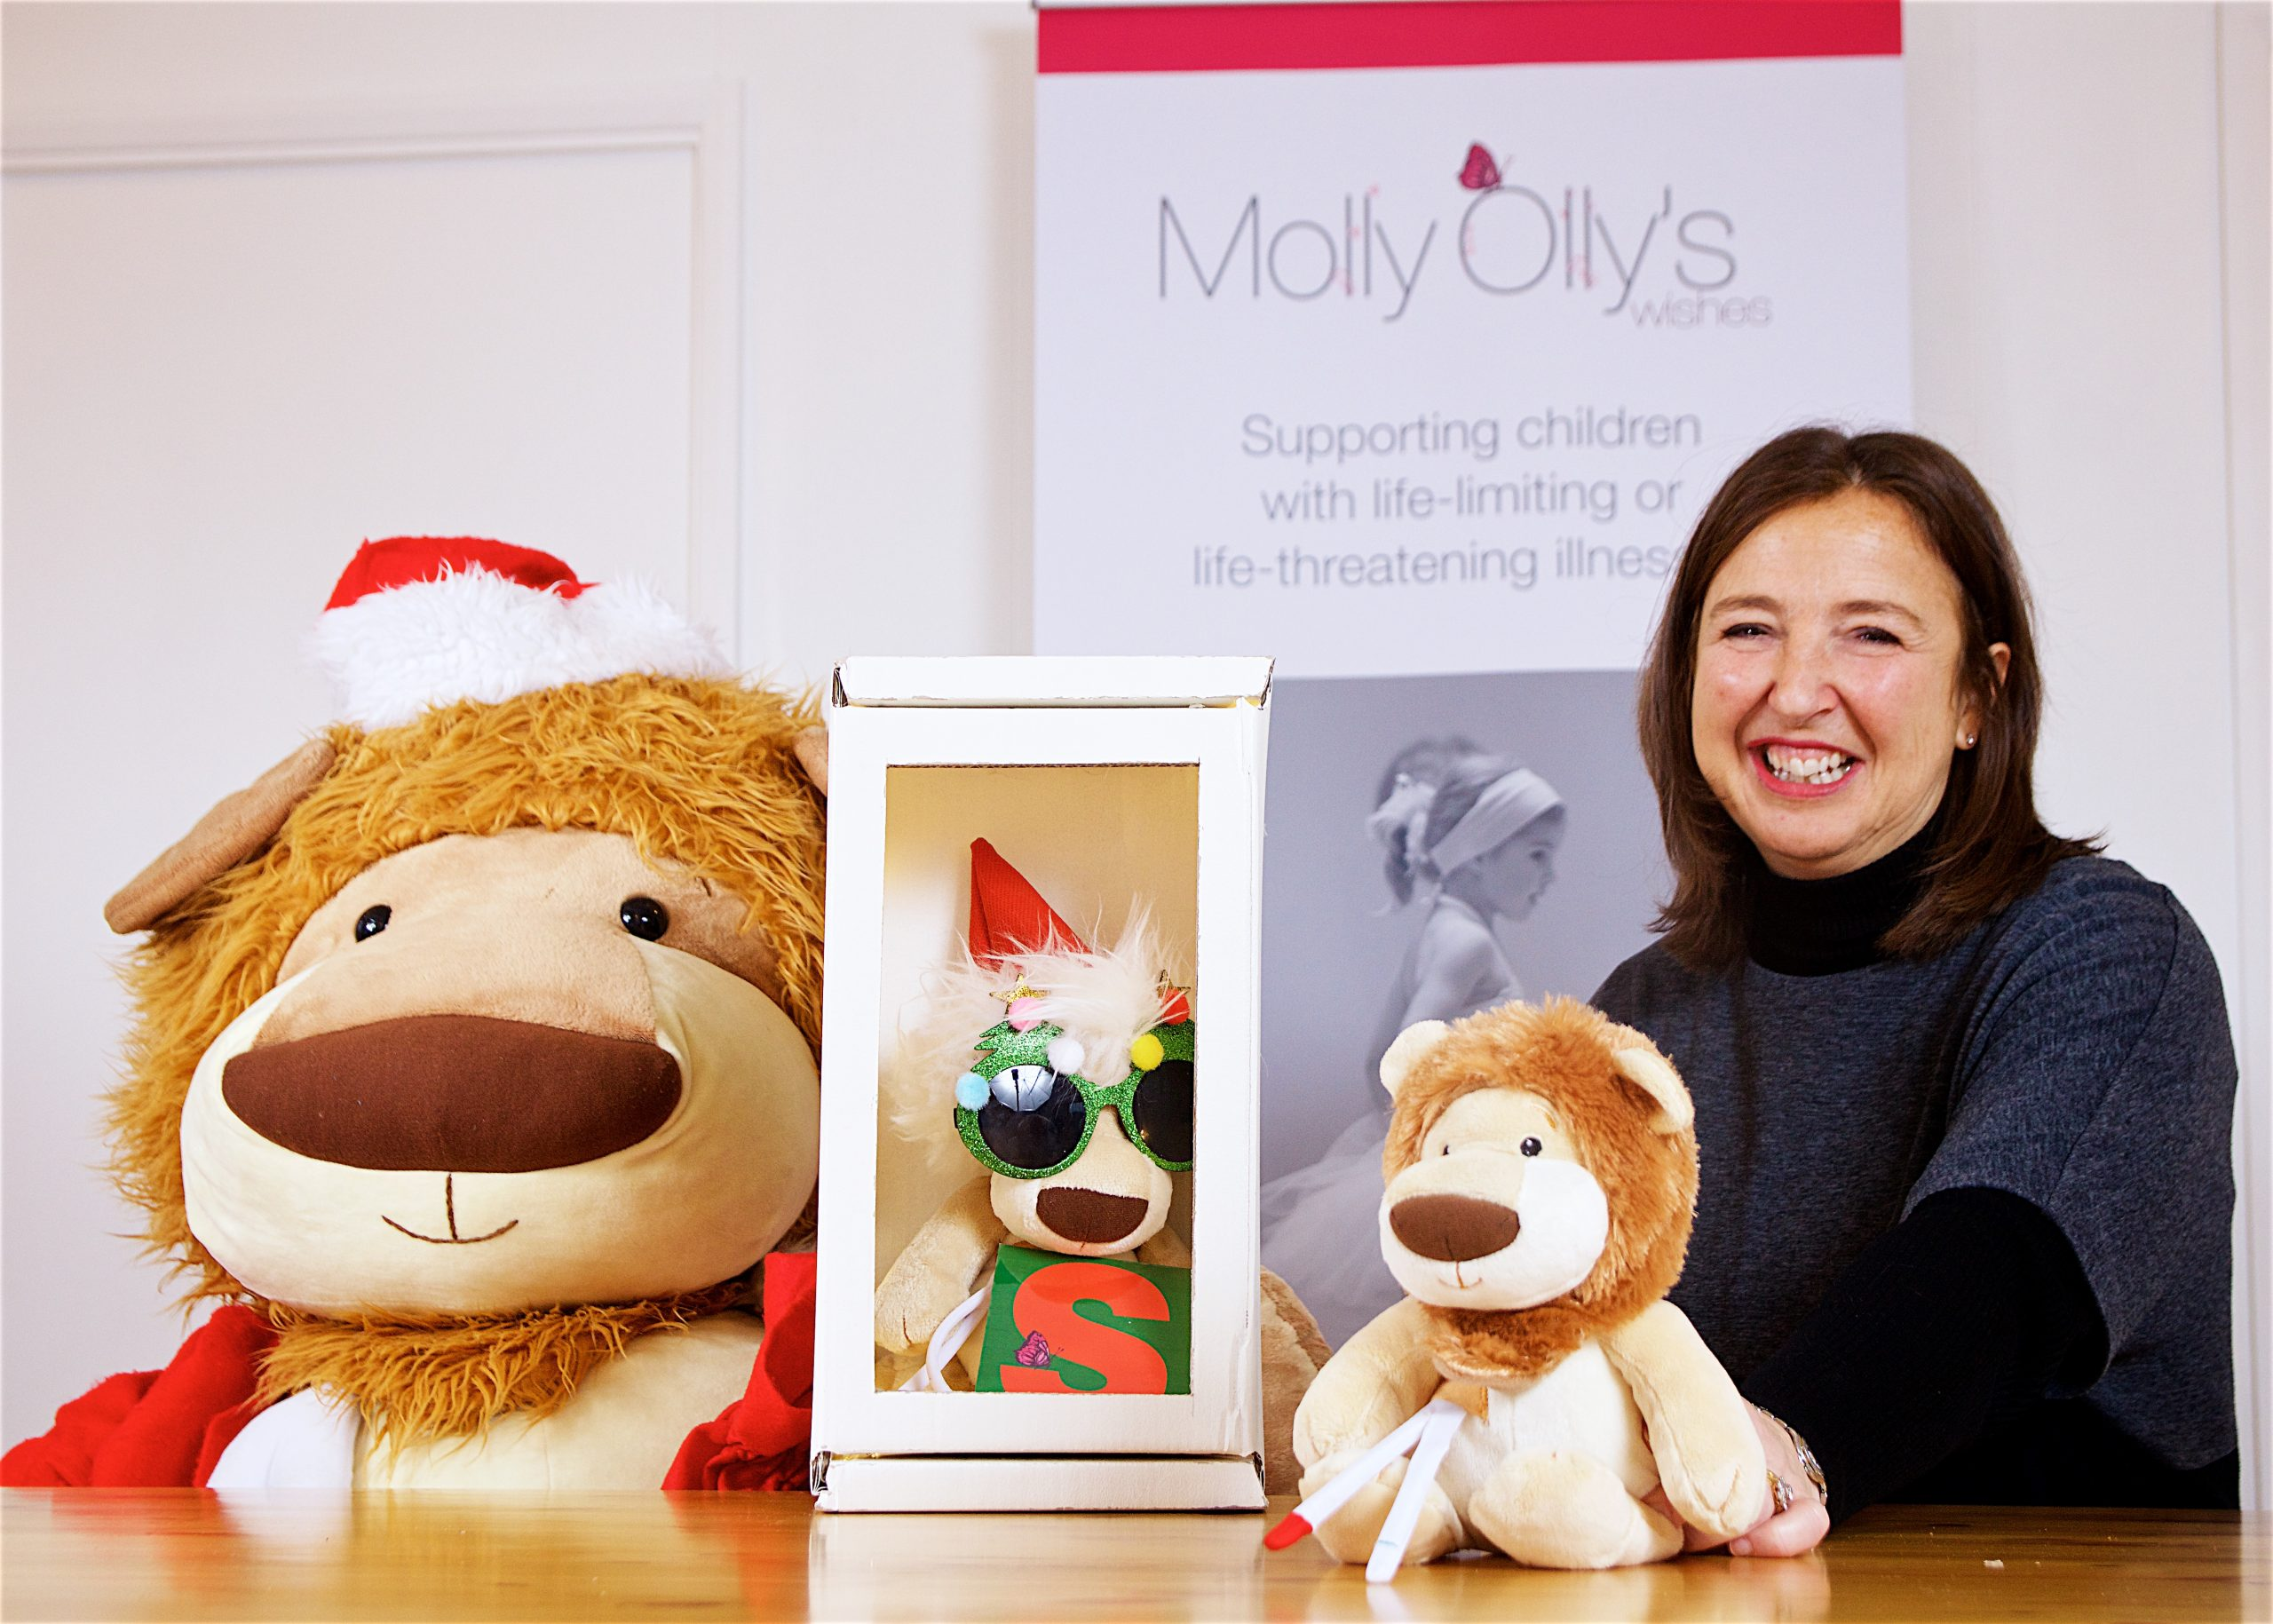 Molly Olly's Wishes, treasure trail, Christmas, Rachel Ollerenshaw